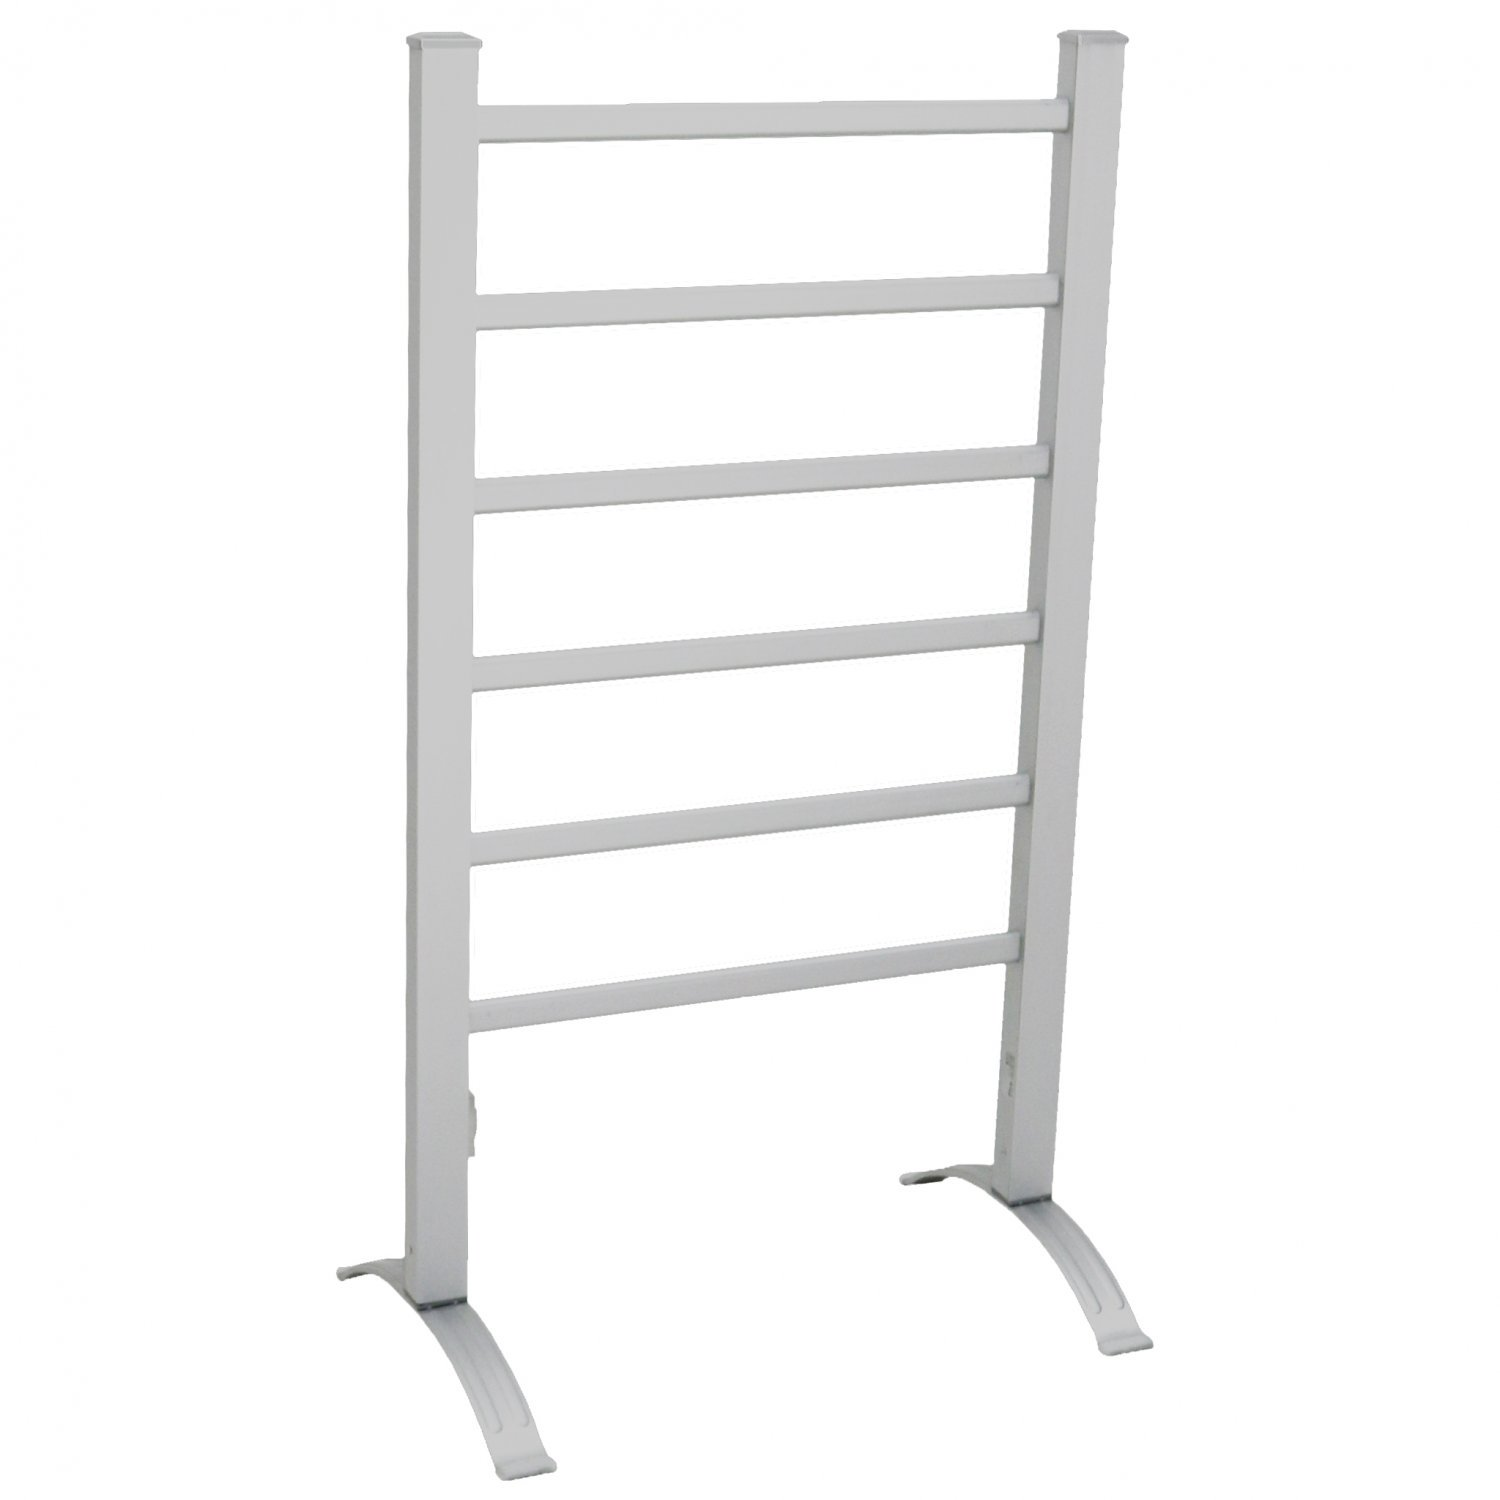 Portable Aluminium Electric Towel Rail Warmer with 6 Heated Bars